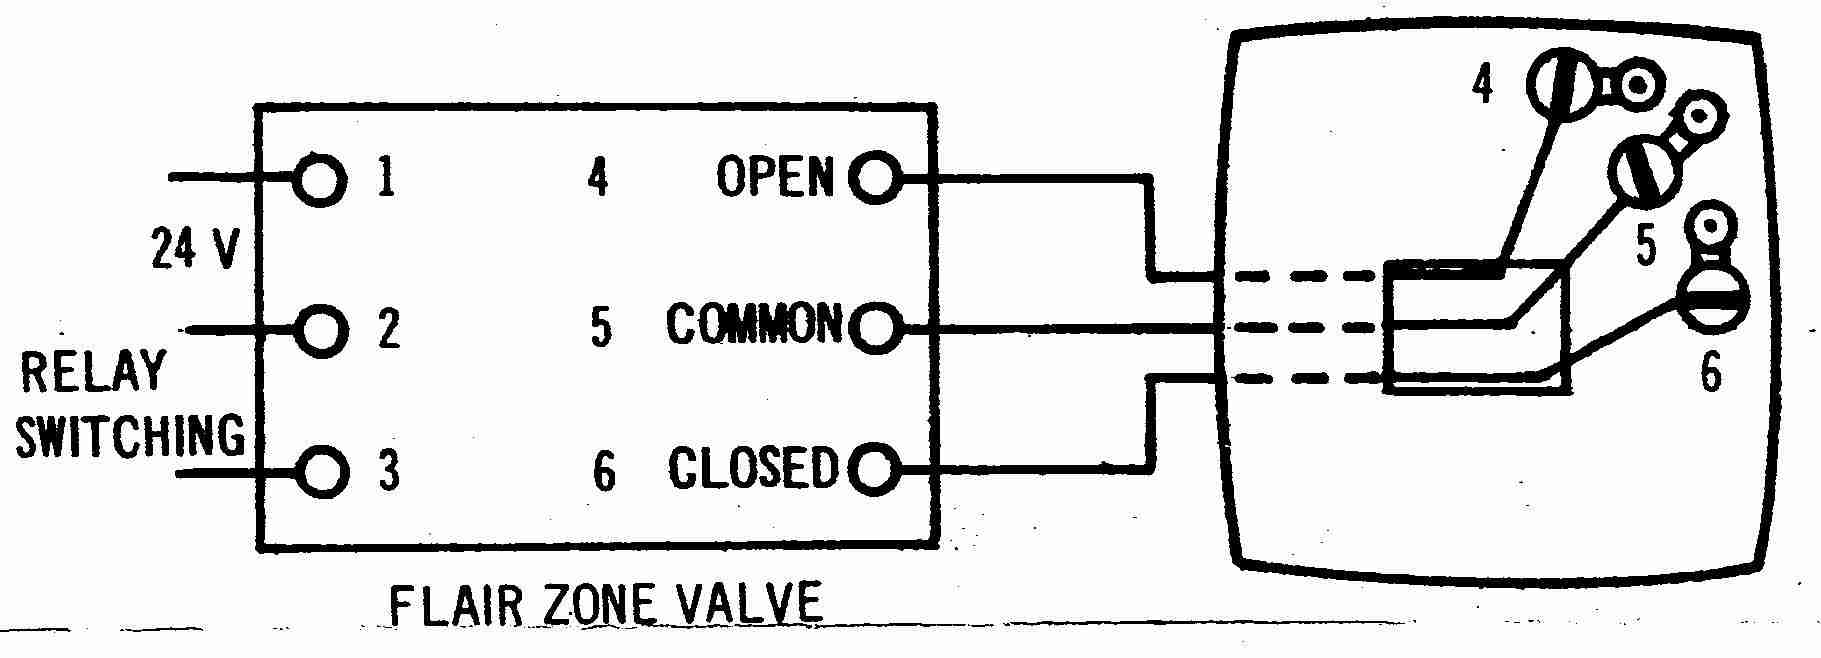 Zone Valve Wiring Installation Instructions Guide To Heating 7 5 Amp 4 Pin Relay Diagram Flair 3 Wire Thermostat Controlling A